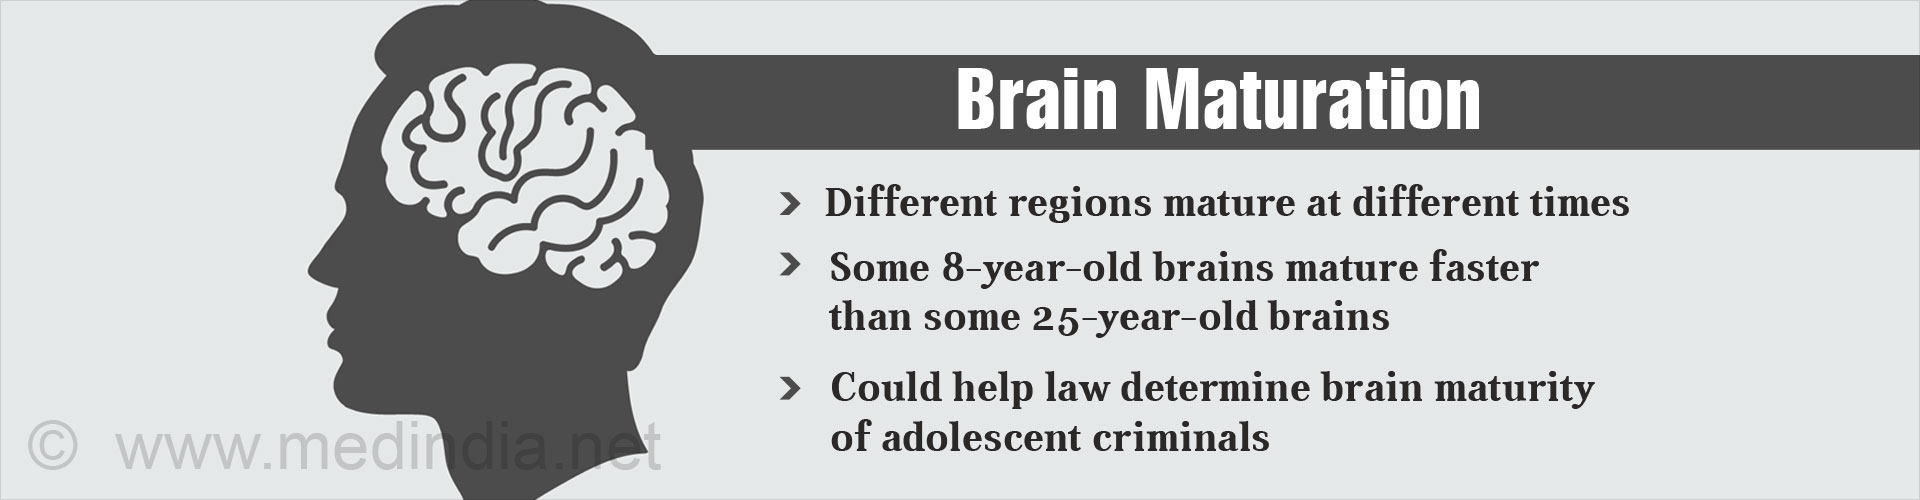 Legal at 18 But Not Matured enough to be an Adult � Recent Findings on Brain Maturation